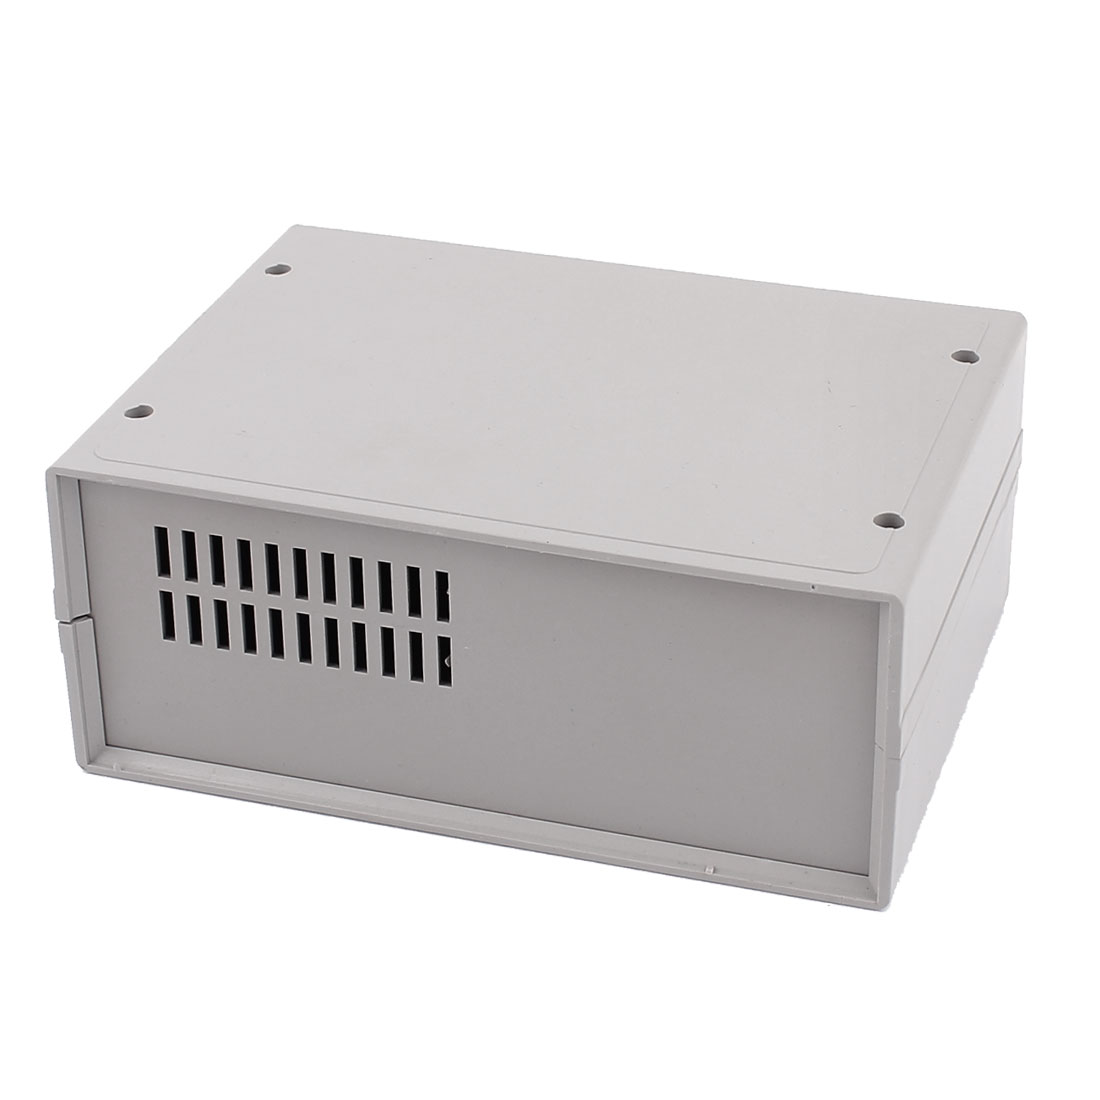 165mm x 120mm x 68mm Gray Plastic Cable Connect Water Resistant DIY Joint Enclosure Junction Box Case